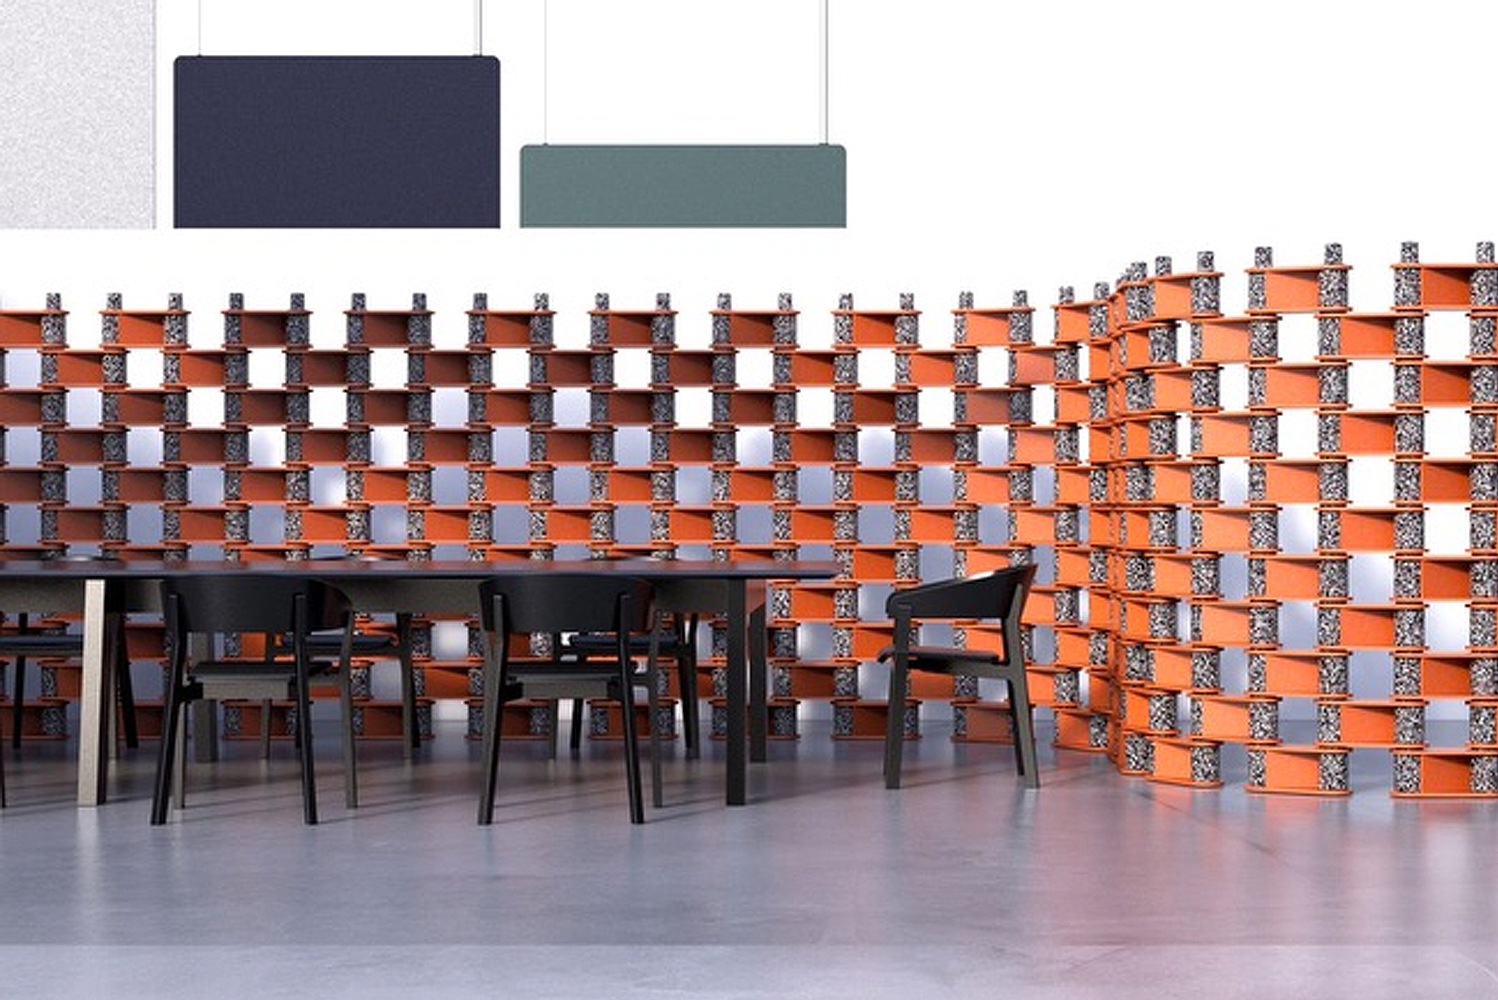 Brix by Luxxbox is a flexible system that creates partitions, walls and cubicles for privacy while reducing unwanted noise in open spaces.